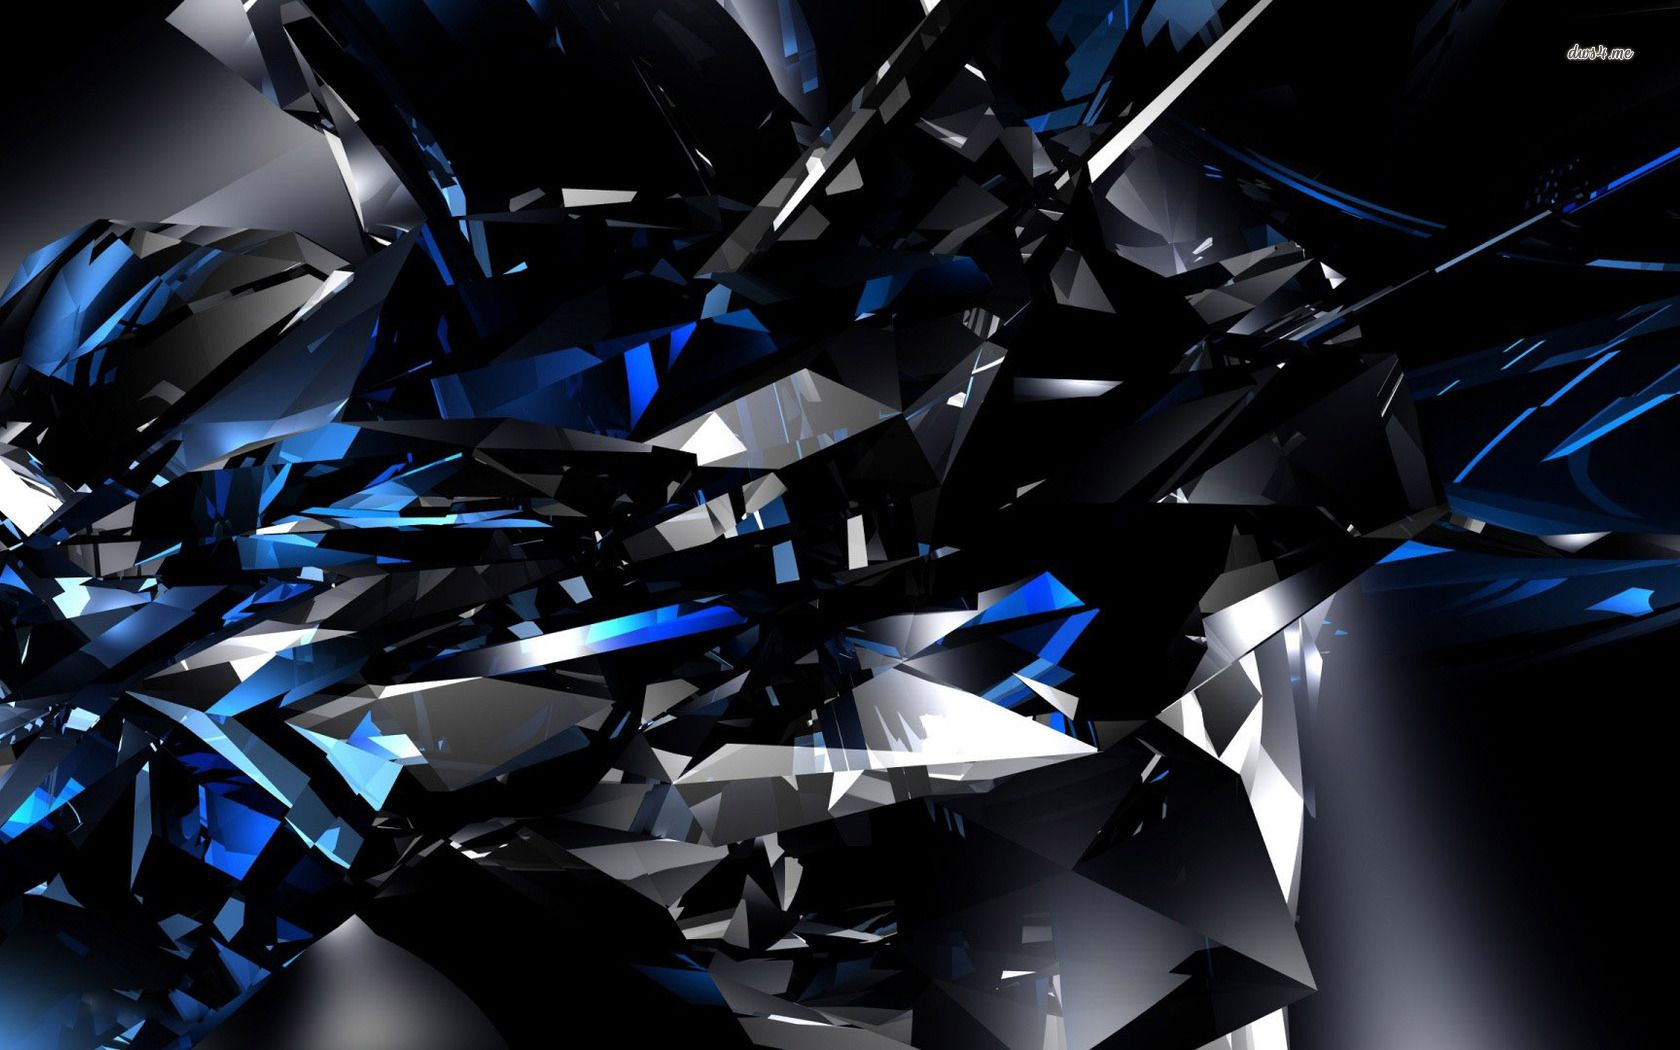 Black And Blue Crystals Hd Wallpaper Black And Blue Background